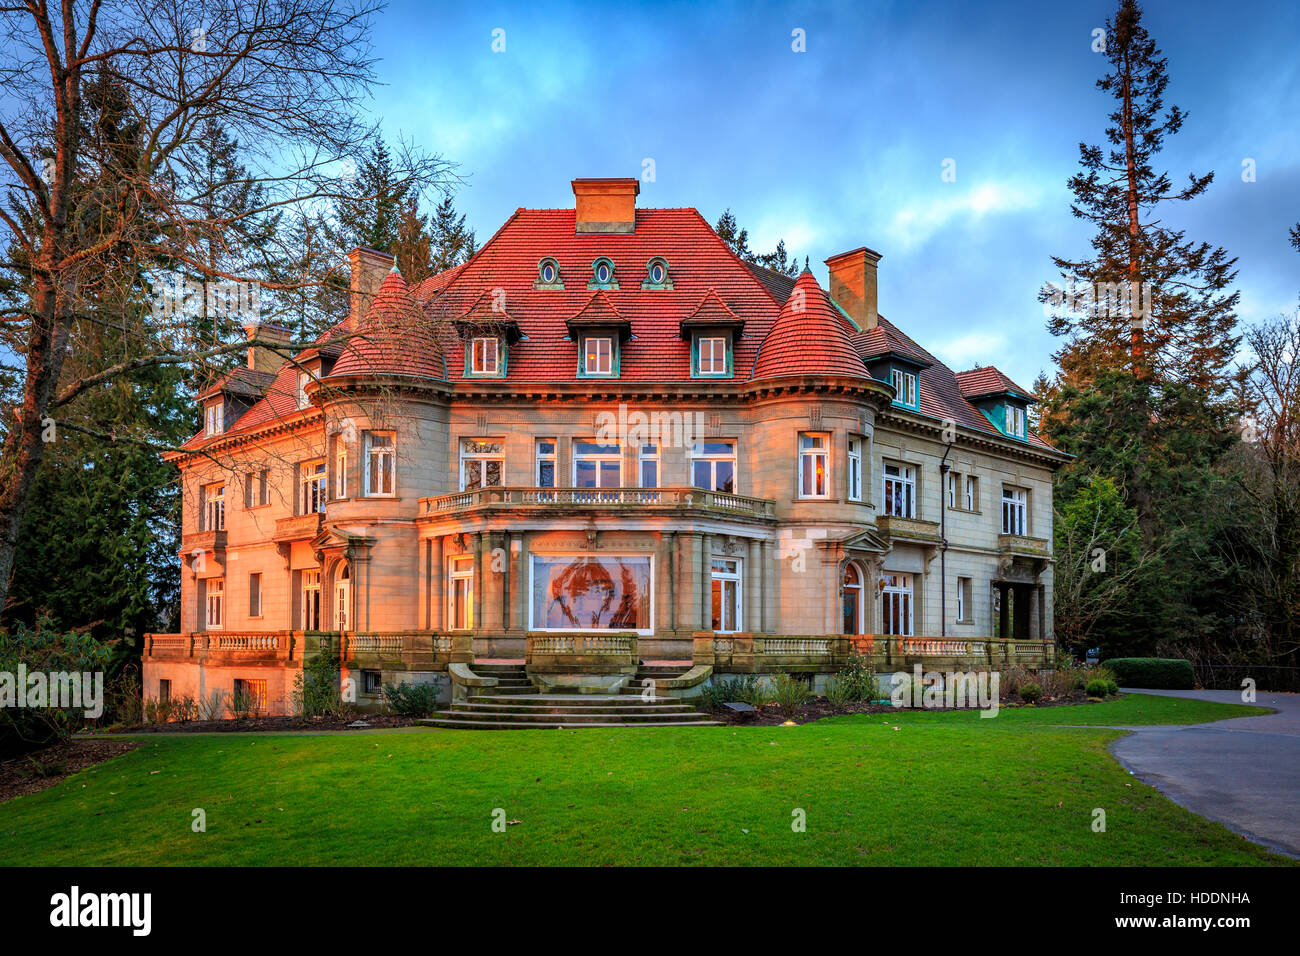 Portland, Oregon, USA - February 7, 2016: Originally built in 1909, Pittock mansion is a French Renaissance-style - Stock Image